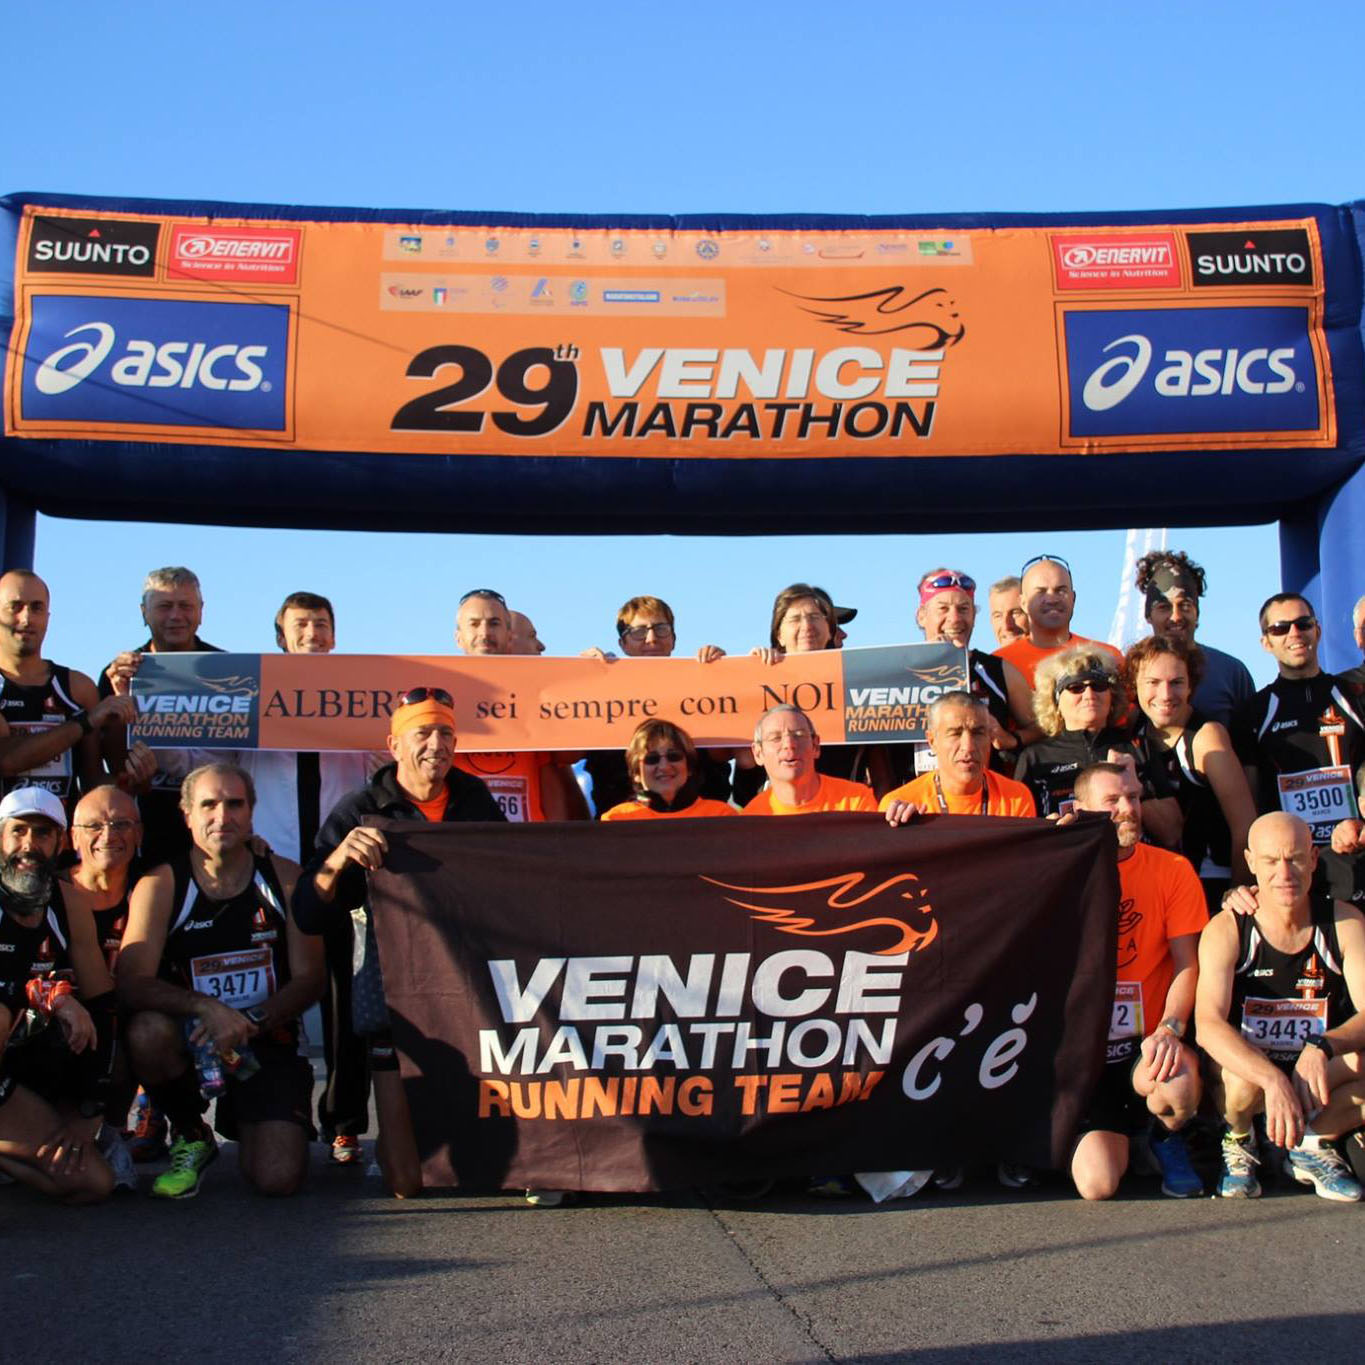 Venicemarathon Running Team